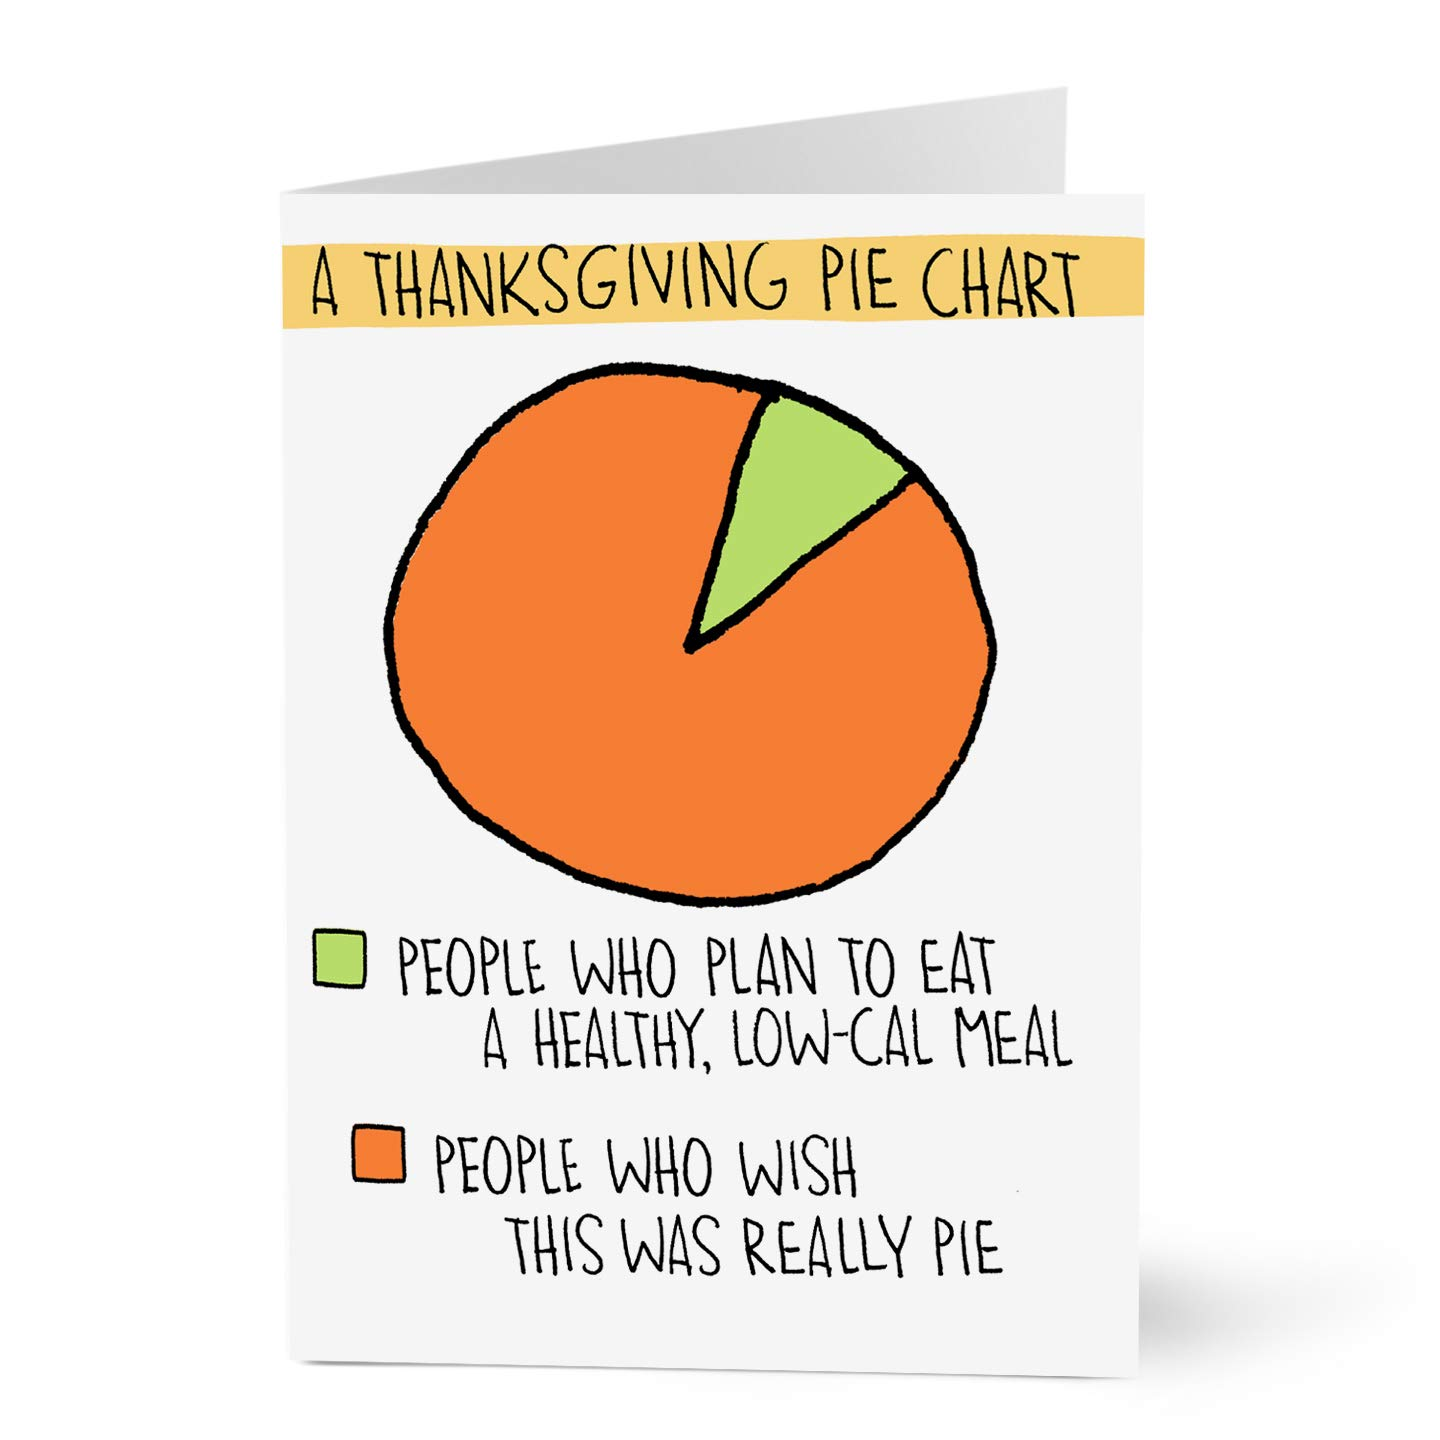 Hallmark Business Thanksgiving Cards for Appreciation (Thanksgiving Pie Chart) (Pack of 25 Greeting Cards)